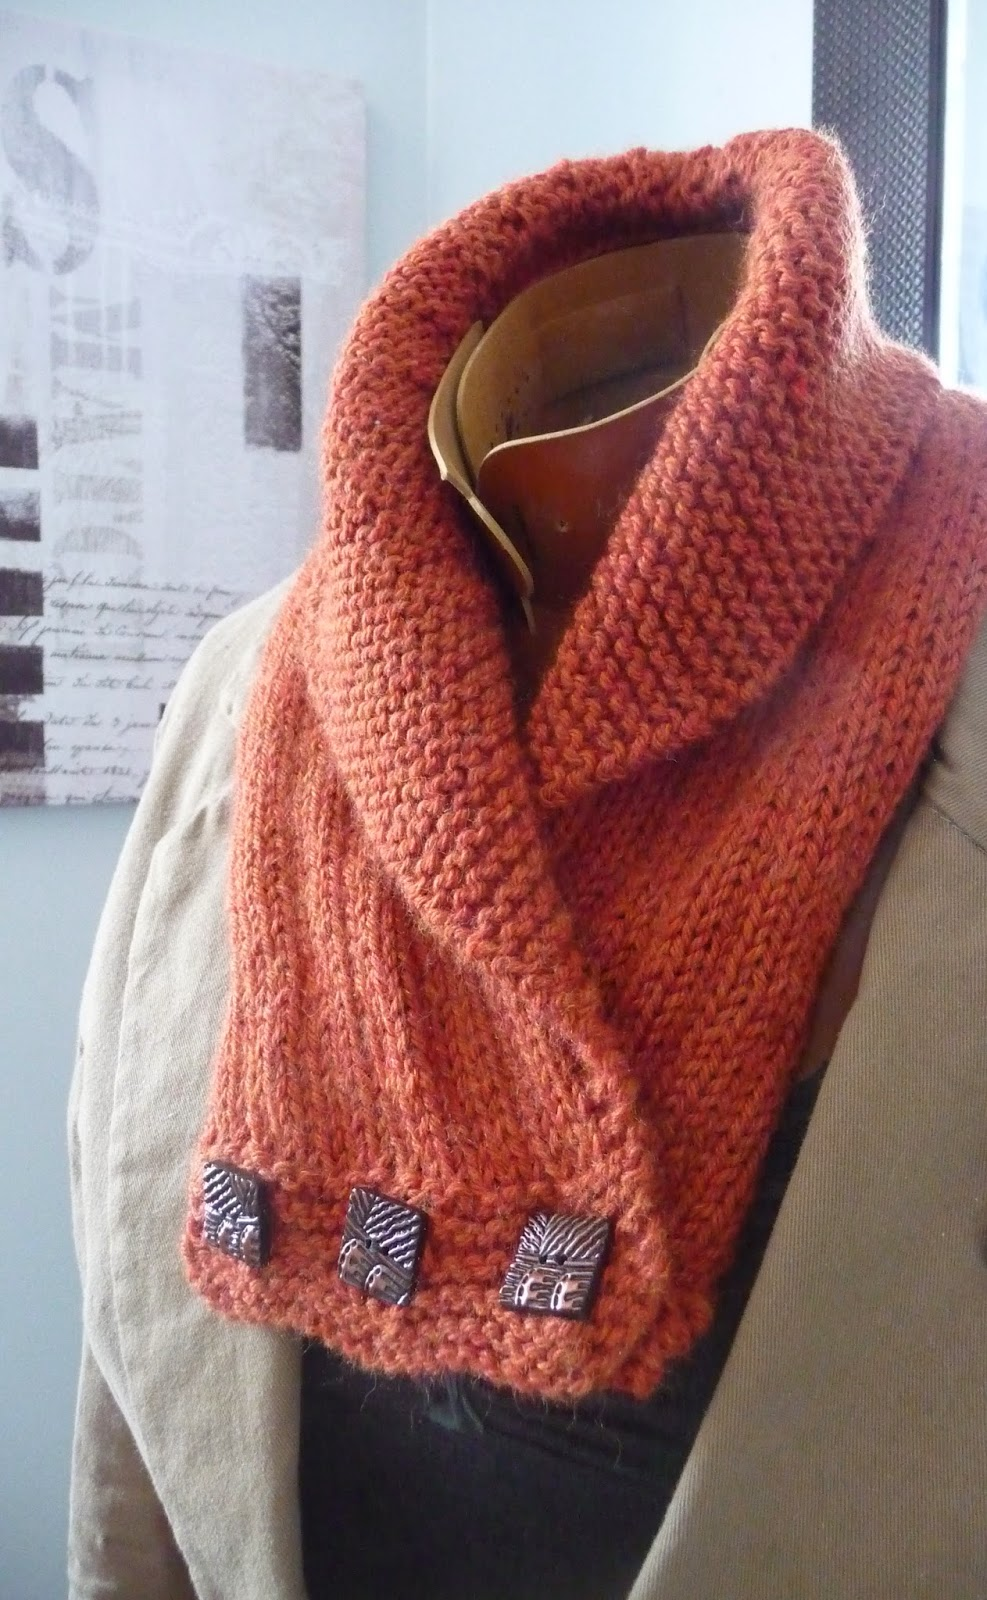 Grace and Favour: A KNITTED COWL